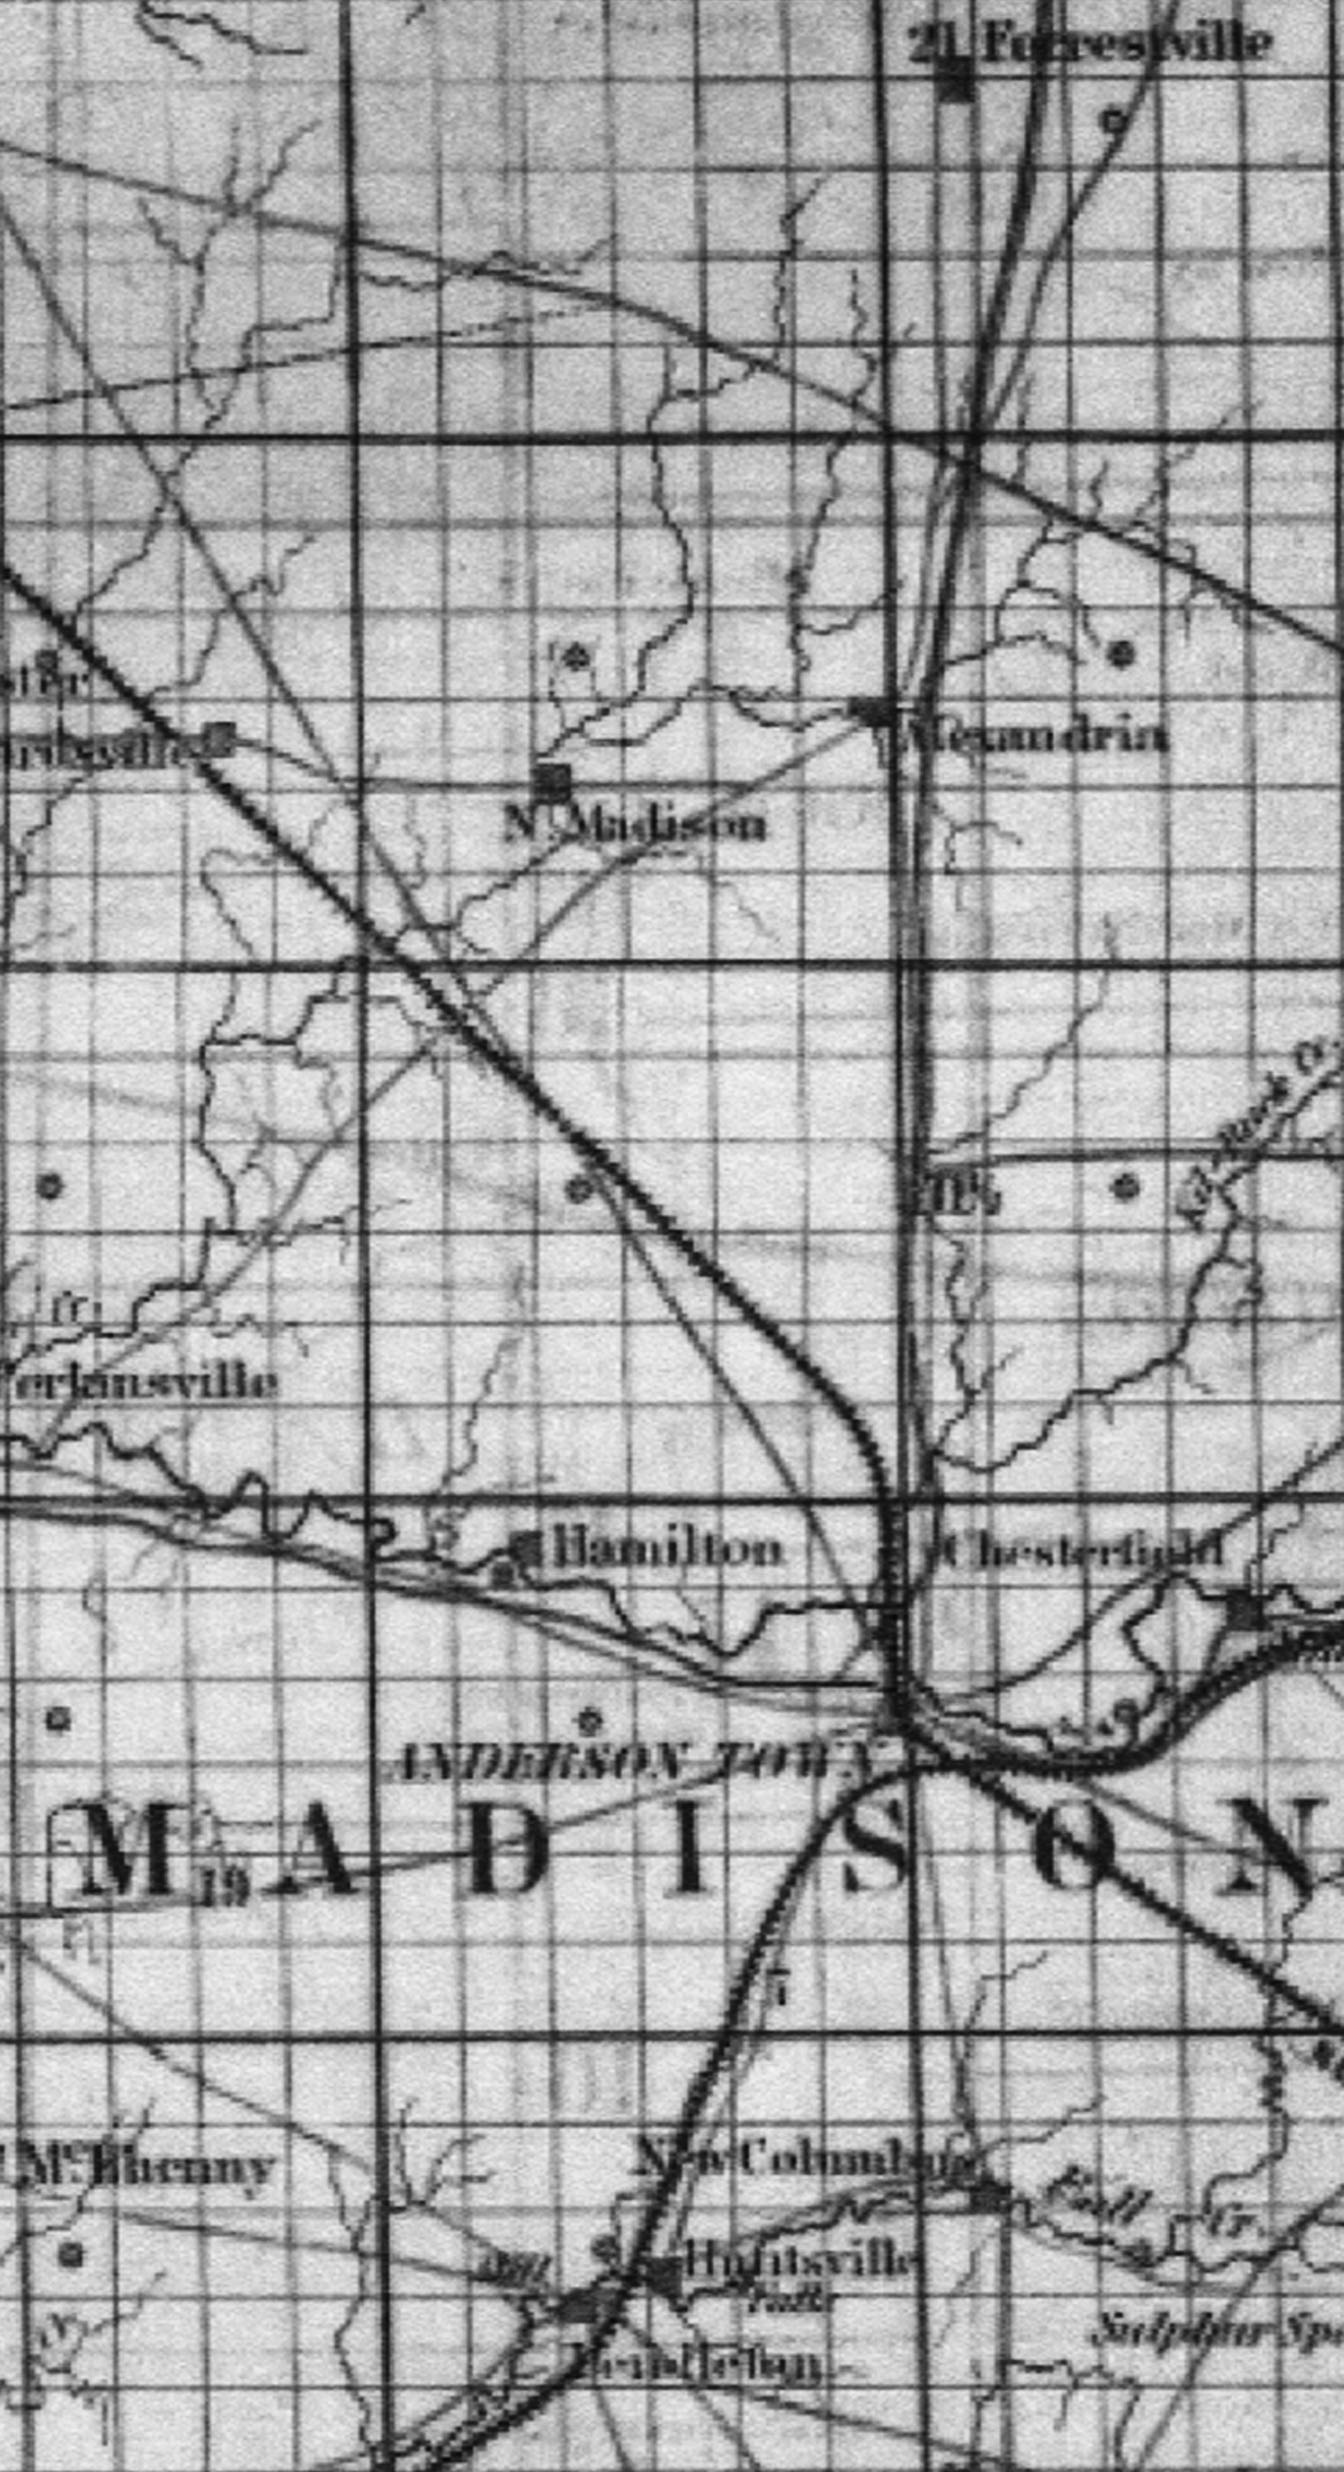 Indiana madison county markleville -  Carefully Laid Down It Should Be Noted That The Small And Larger Squares Are Not Roads But Merely Designate How The Forested Still Thinly Populated